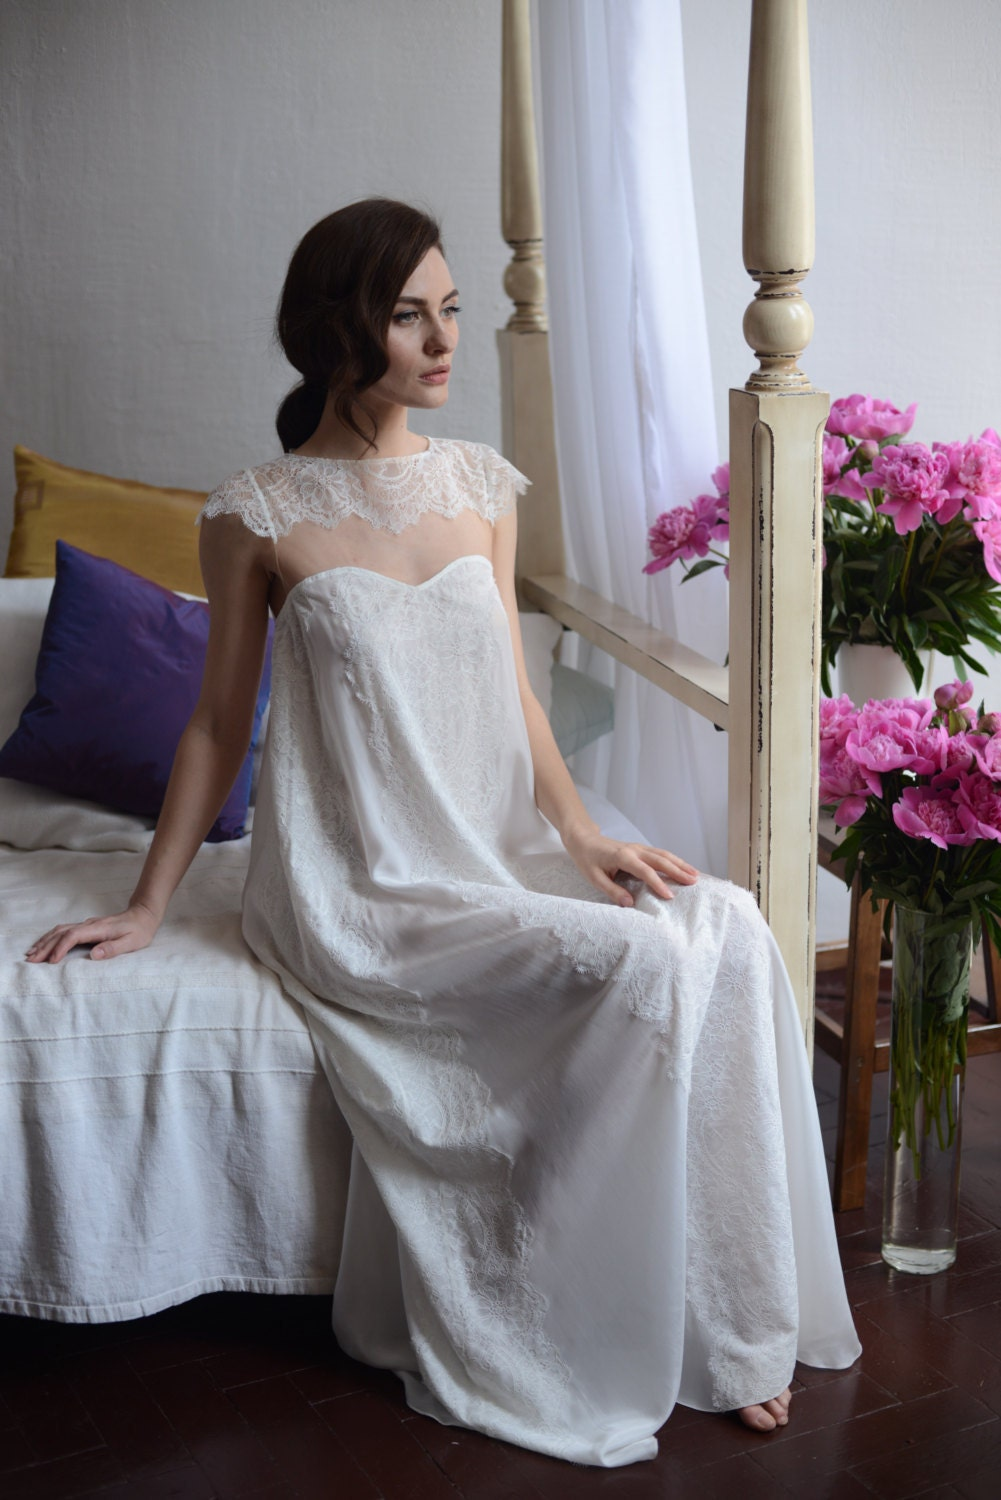 Find sexy bridal lingerie (and Plus Size bridal lingerie, too!) and other important bridal accessories right here at Yandy! Yandy is your top online supplier of fine lingerie and accessories; shop Yandy and get discount deals now!